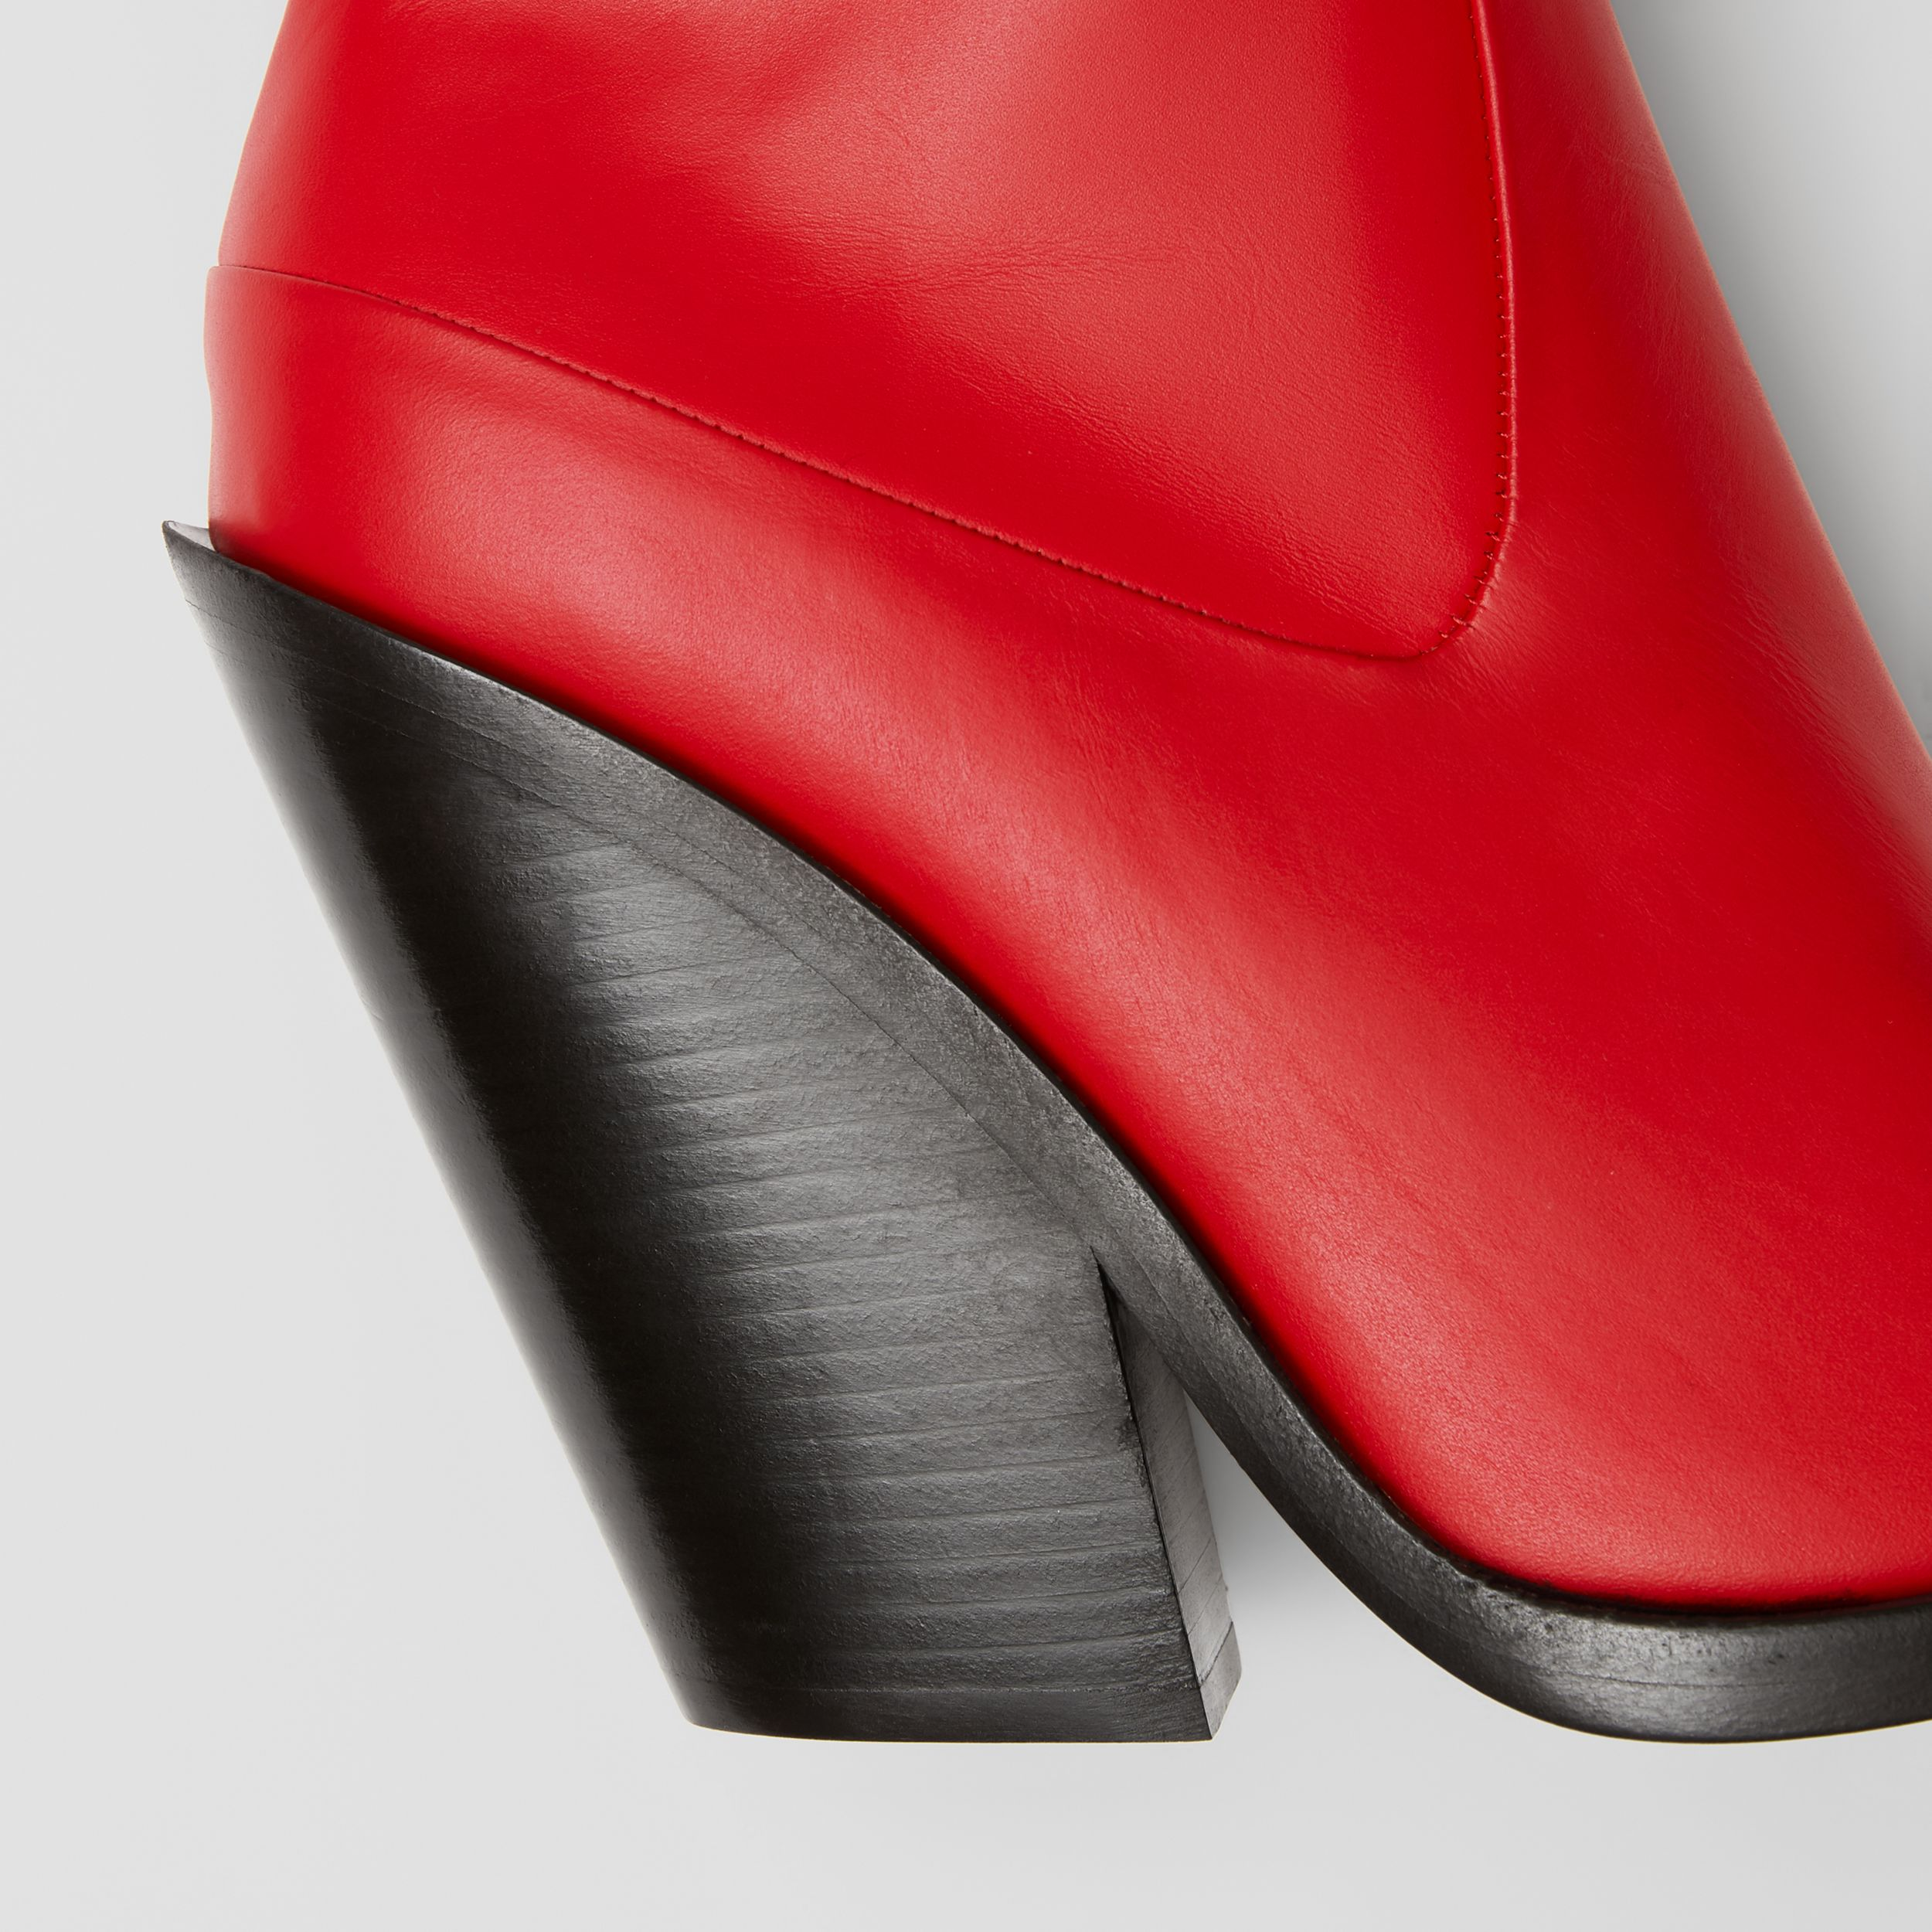 Leather Block-heel Ankle Boots in Bright Red - Women | Burberry - 2